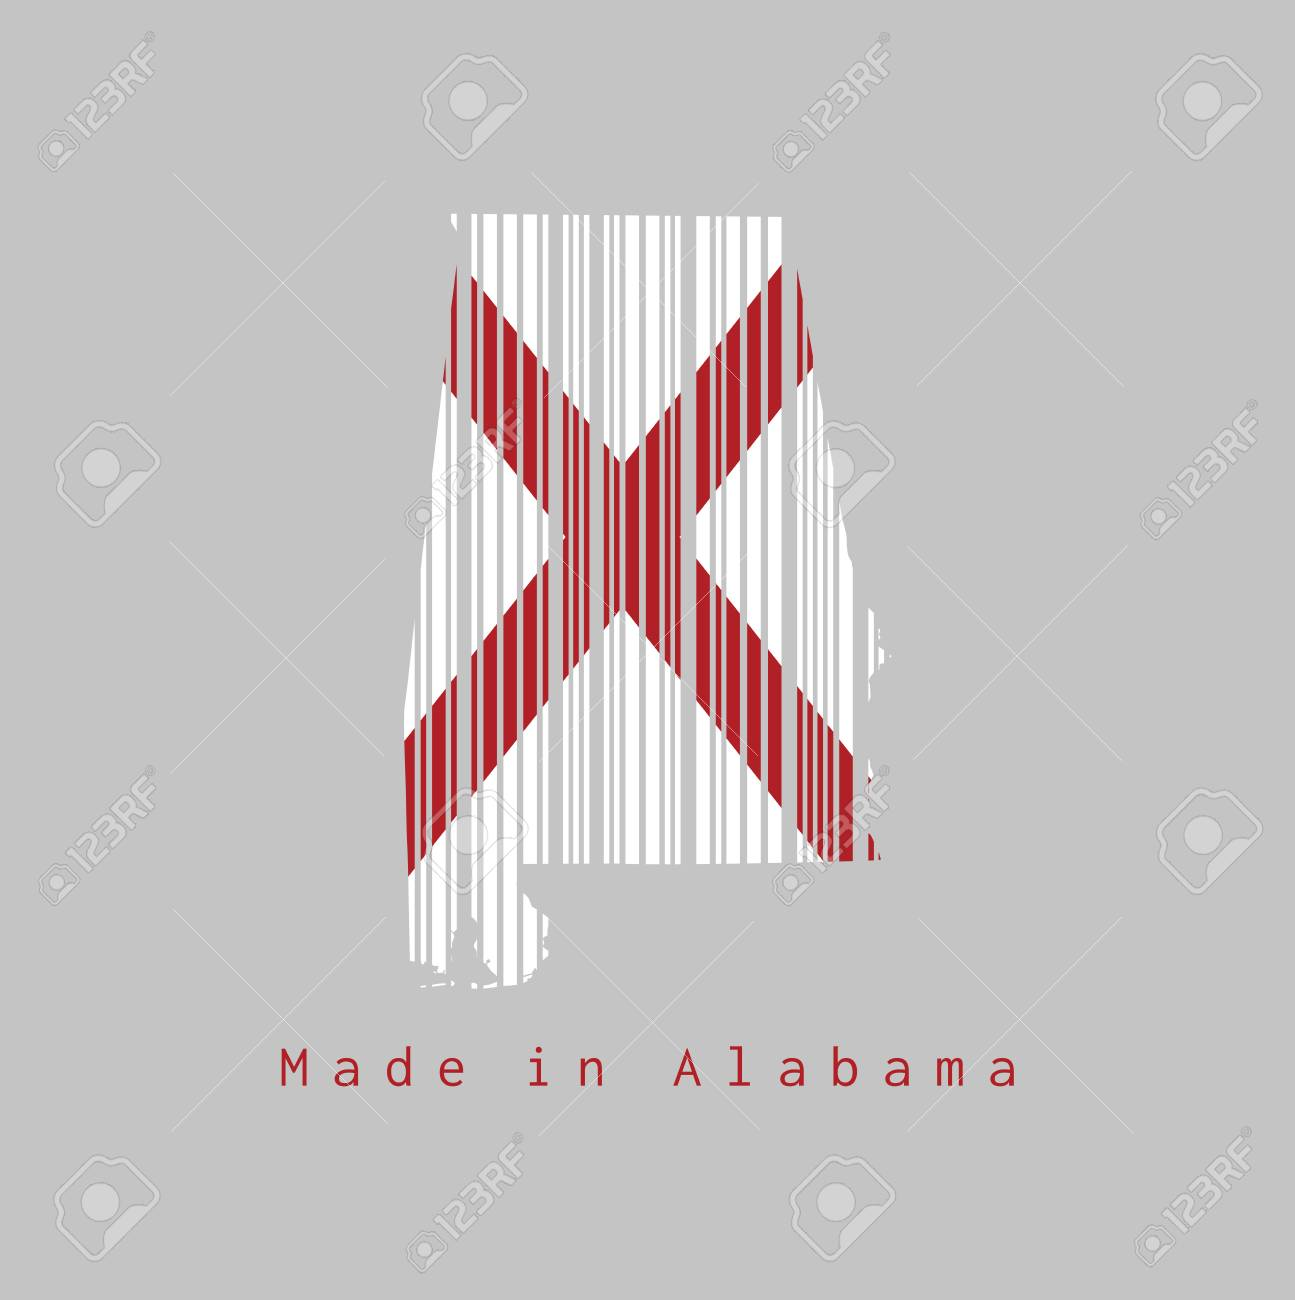 Barcode set the shape to Alabama map outline and the color of